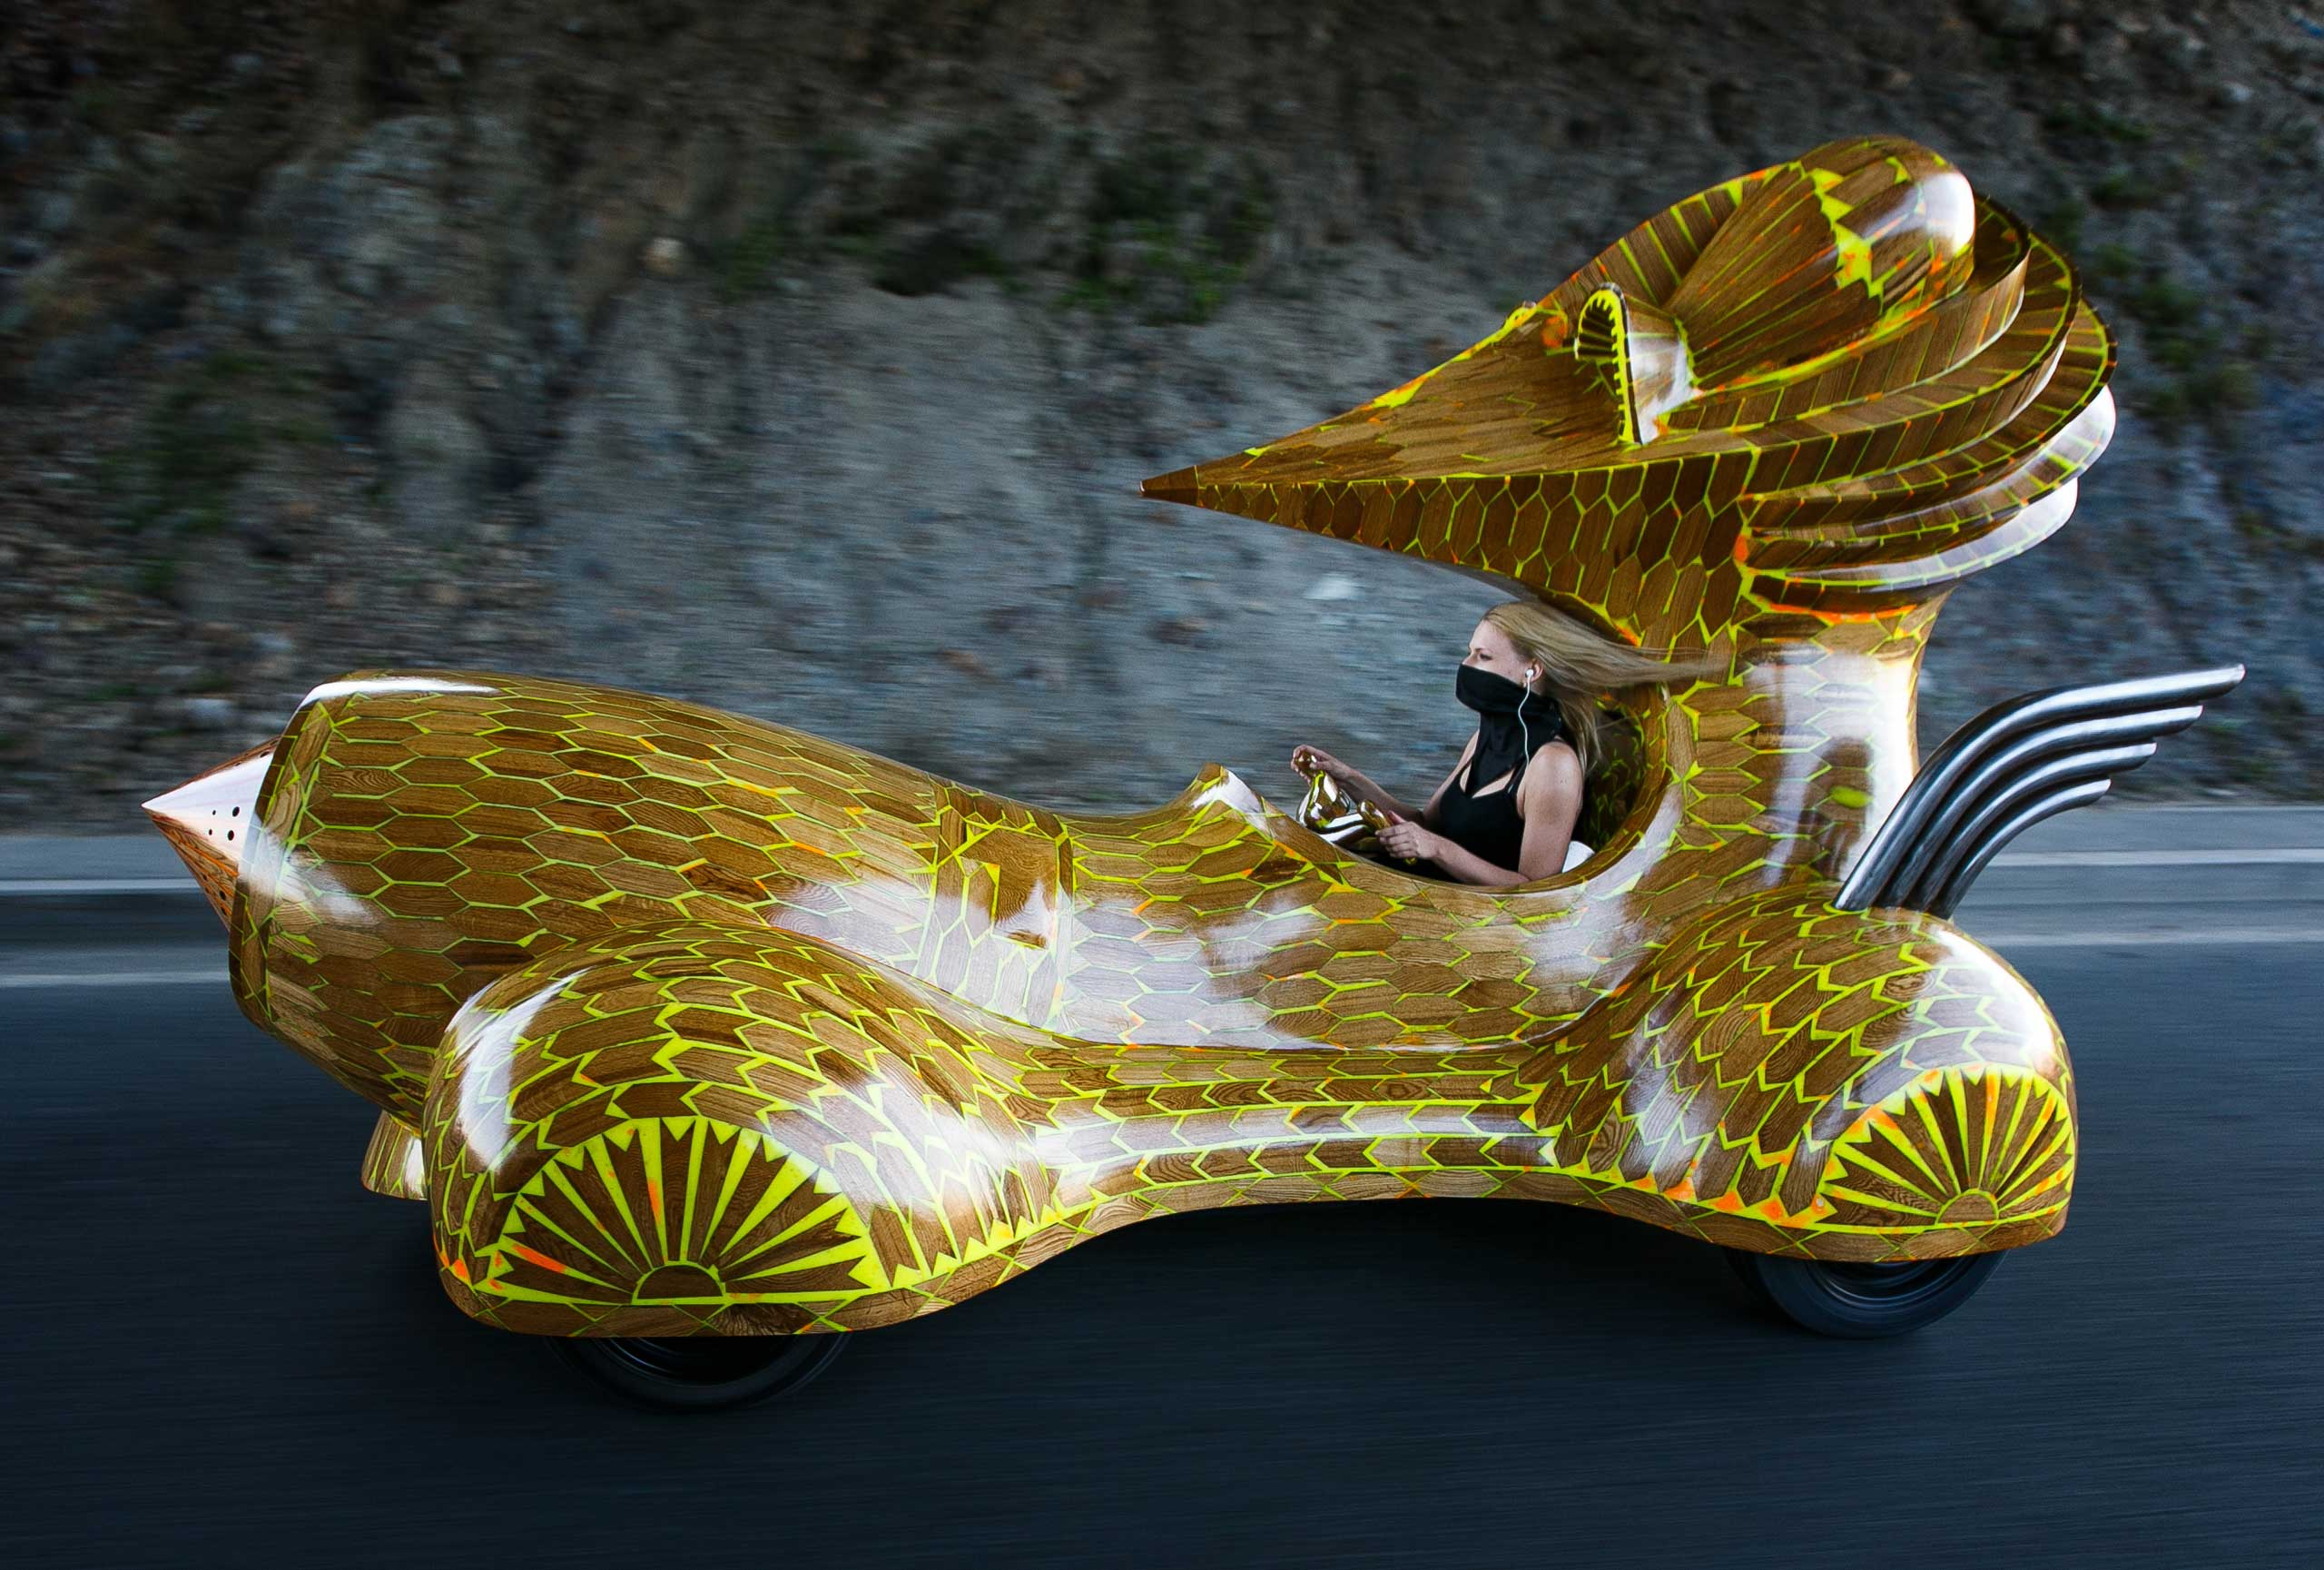 "It somehow doesn't feel like this car, designed by Russian artist Gosha Ostretsov, will fly off the shelves. But that's okay, because it's more <a href=""http://zaryavladivostok.ru/en/calendar/event/69"" target=""_blank"">art exhibit</a> than commercial vehicle."